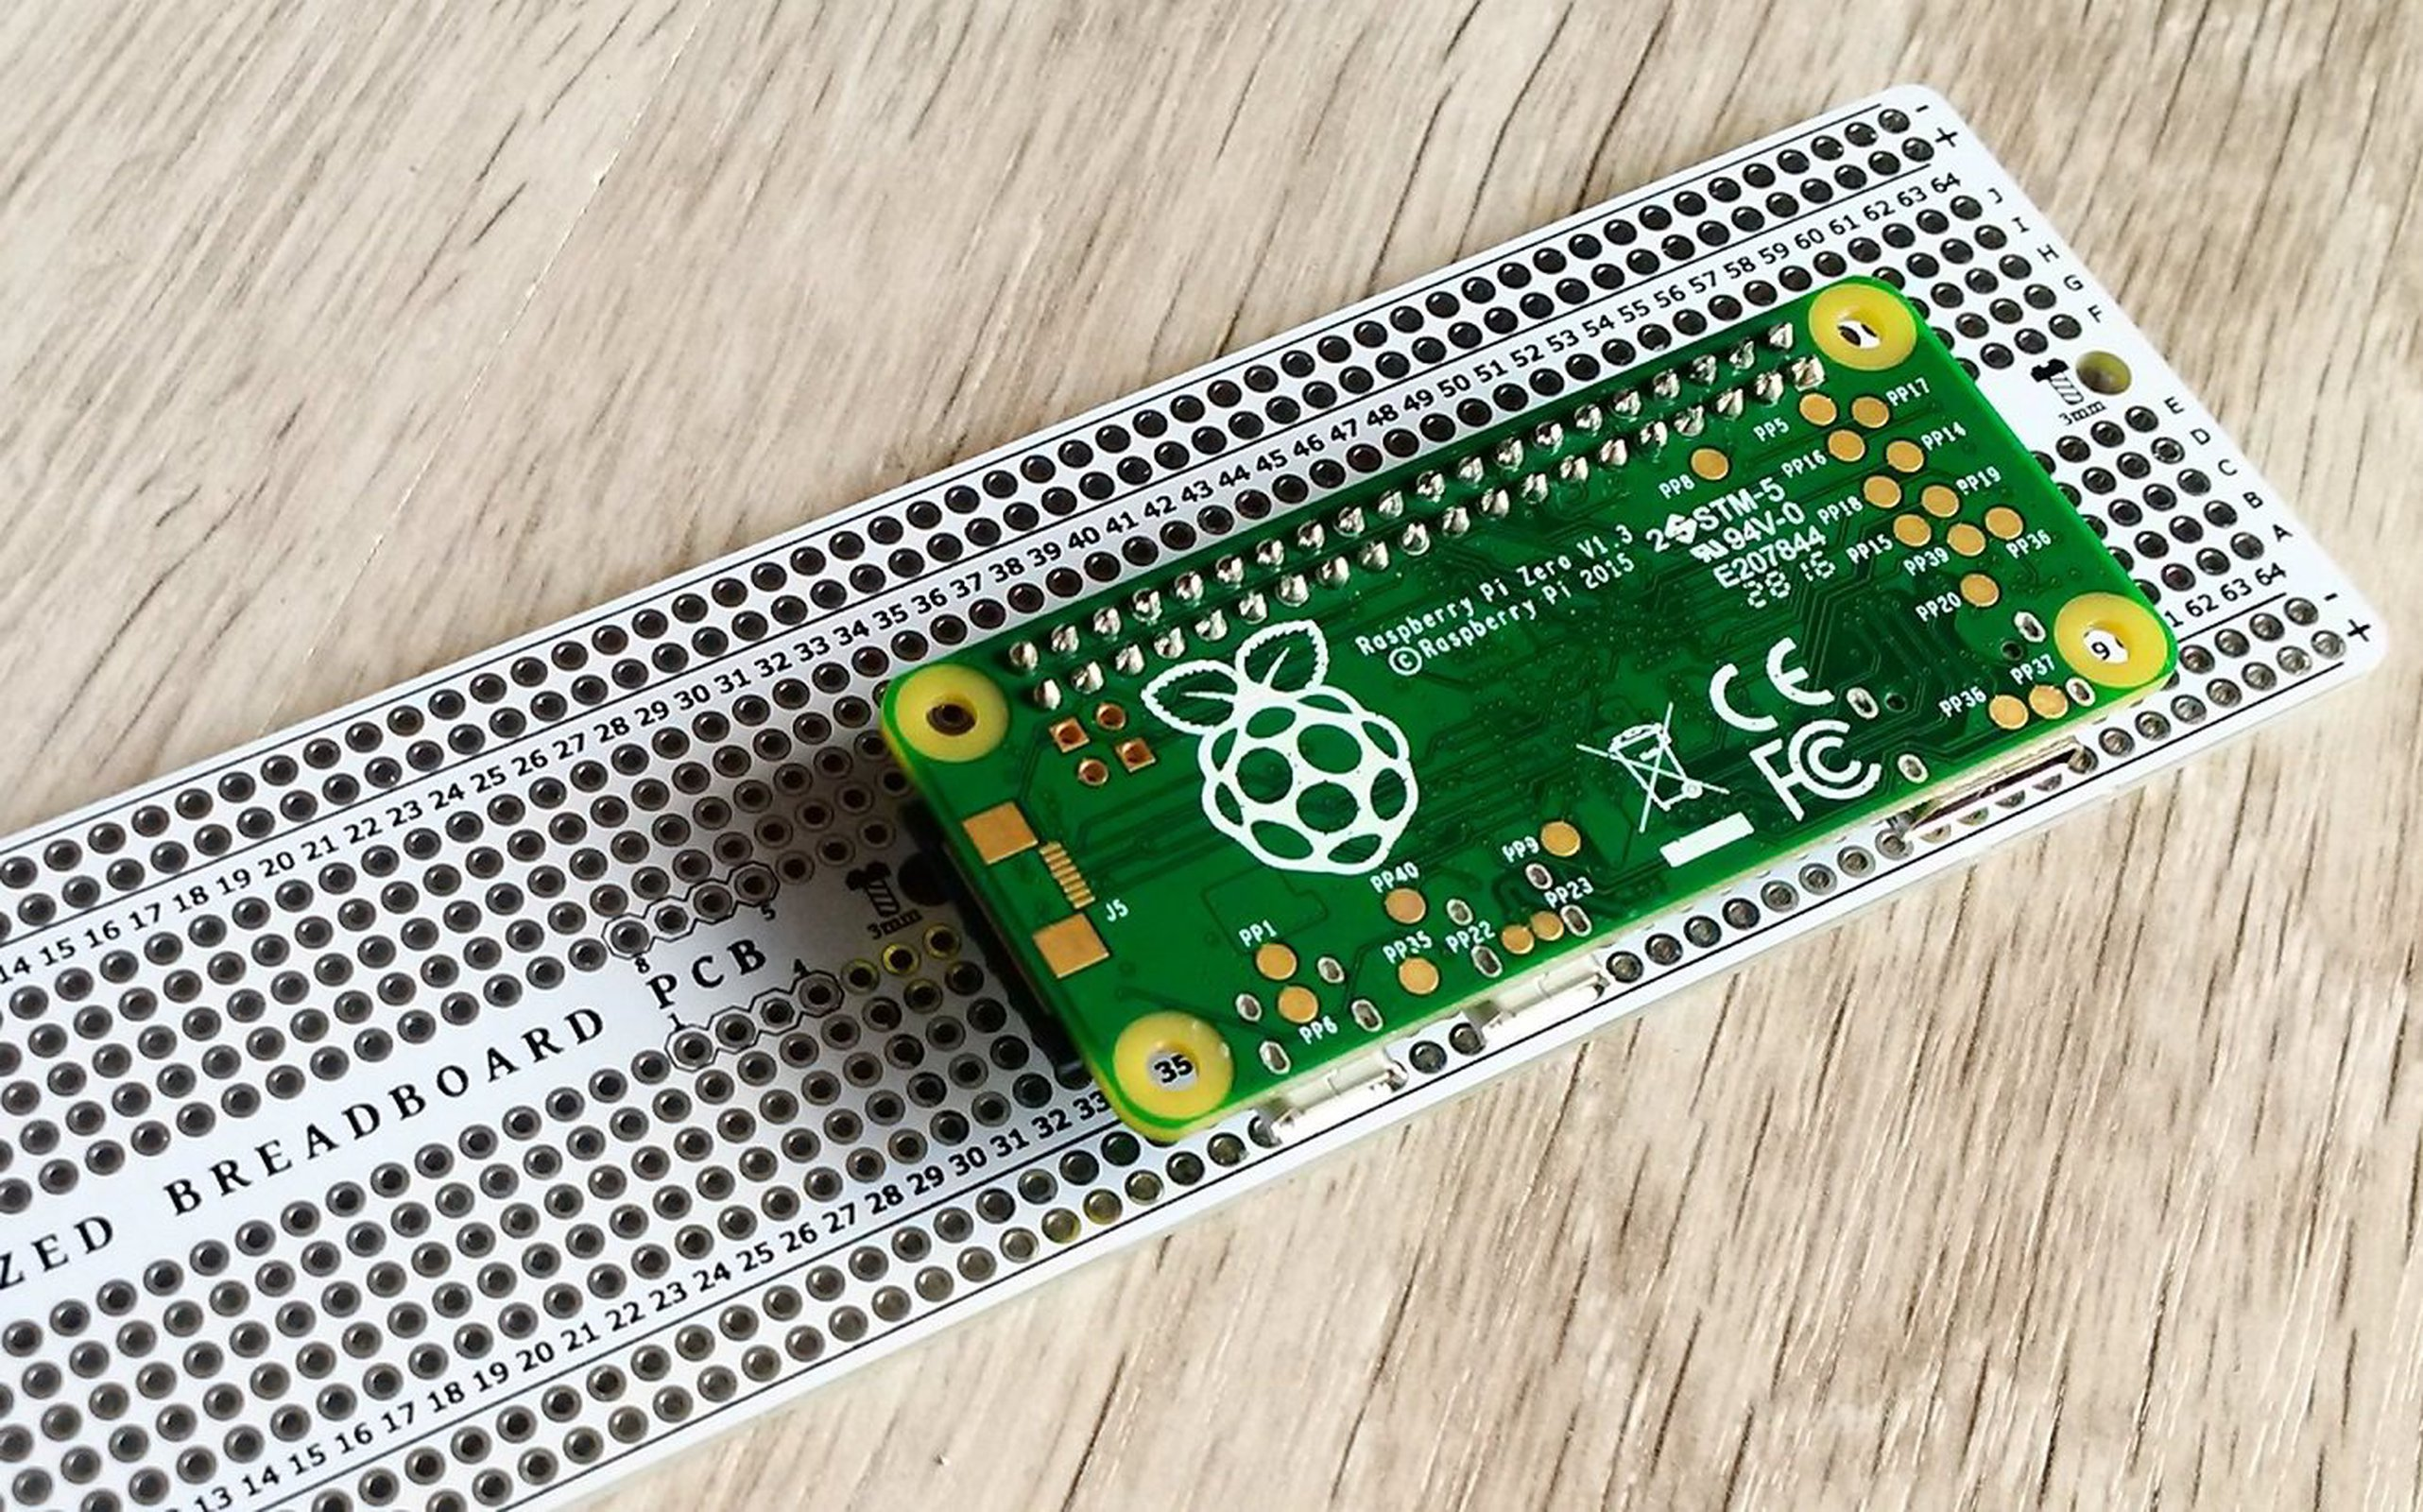 Breadboard Pcb With Raspberry Pi Support From Awesome On Tindie Mini Prototype Printed Circuit Board Free Shipping 1